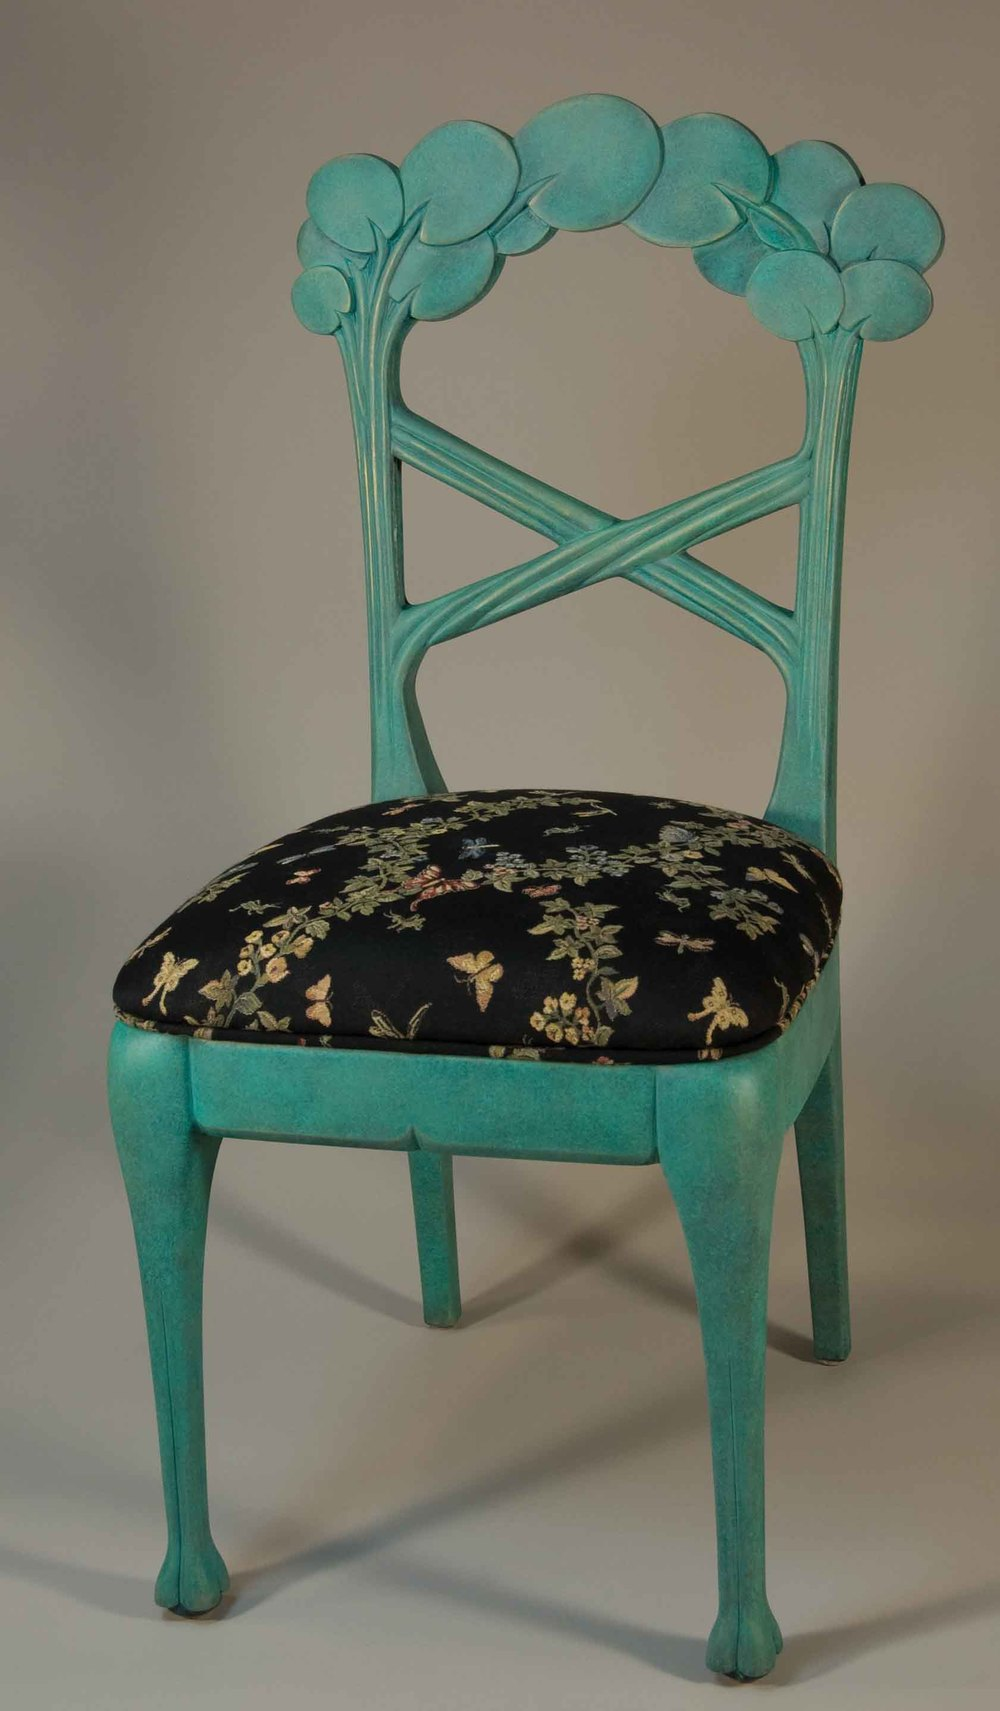 Lilly pad chair.jpg